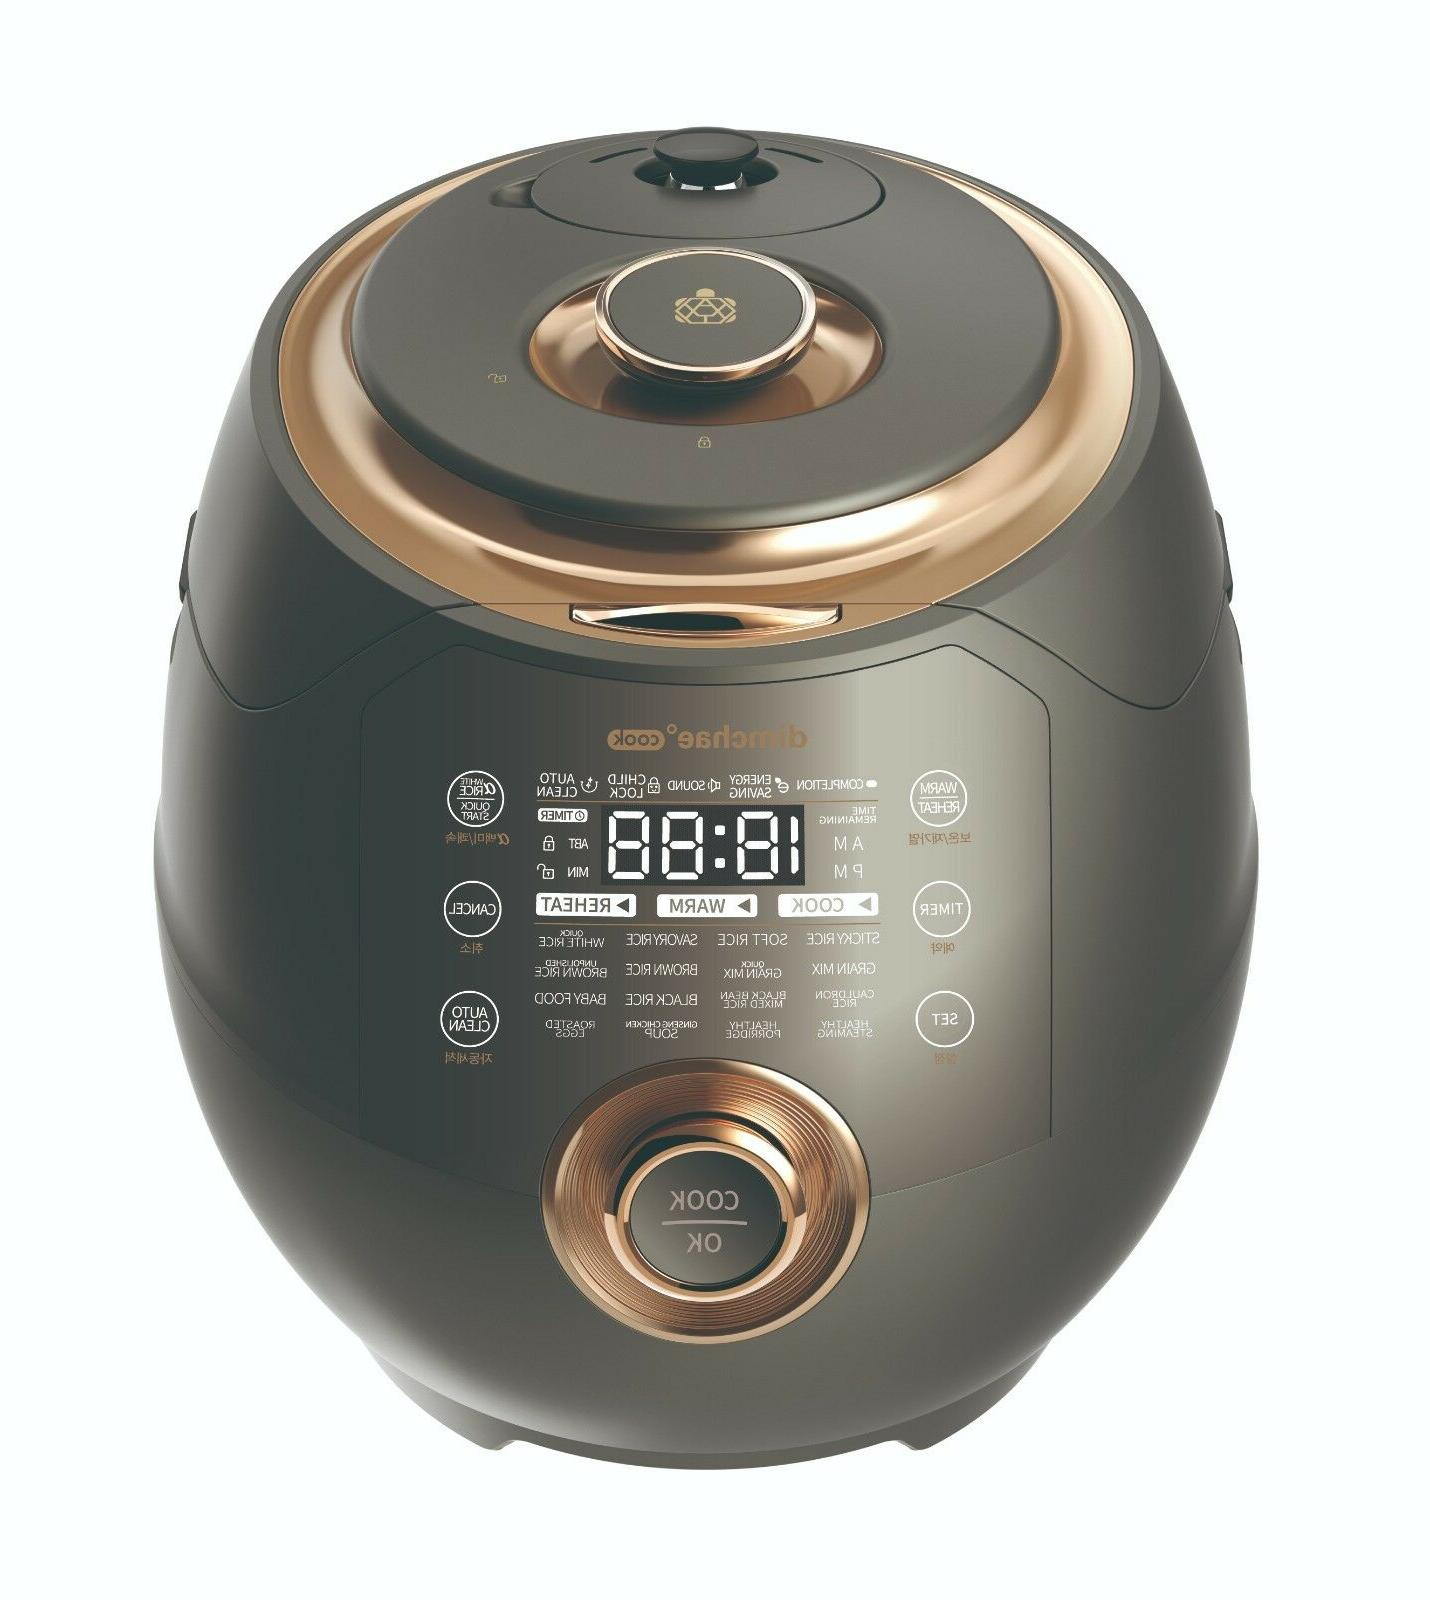 cook induction heat pressure rice cooker 10